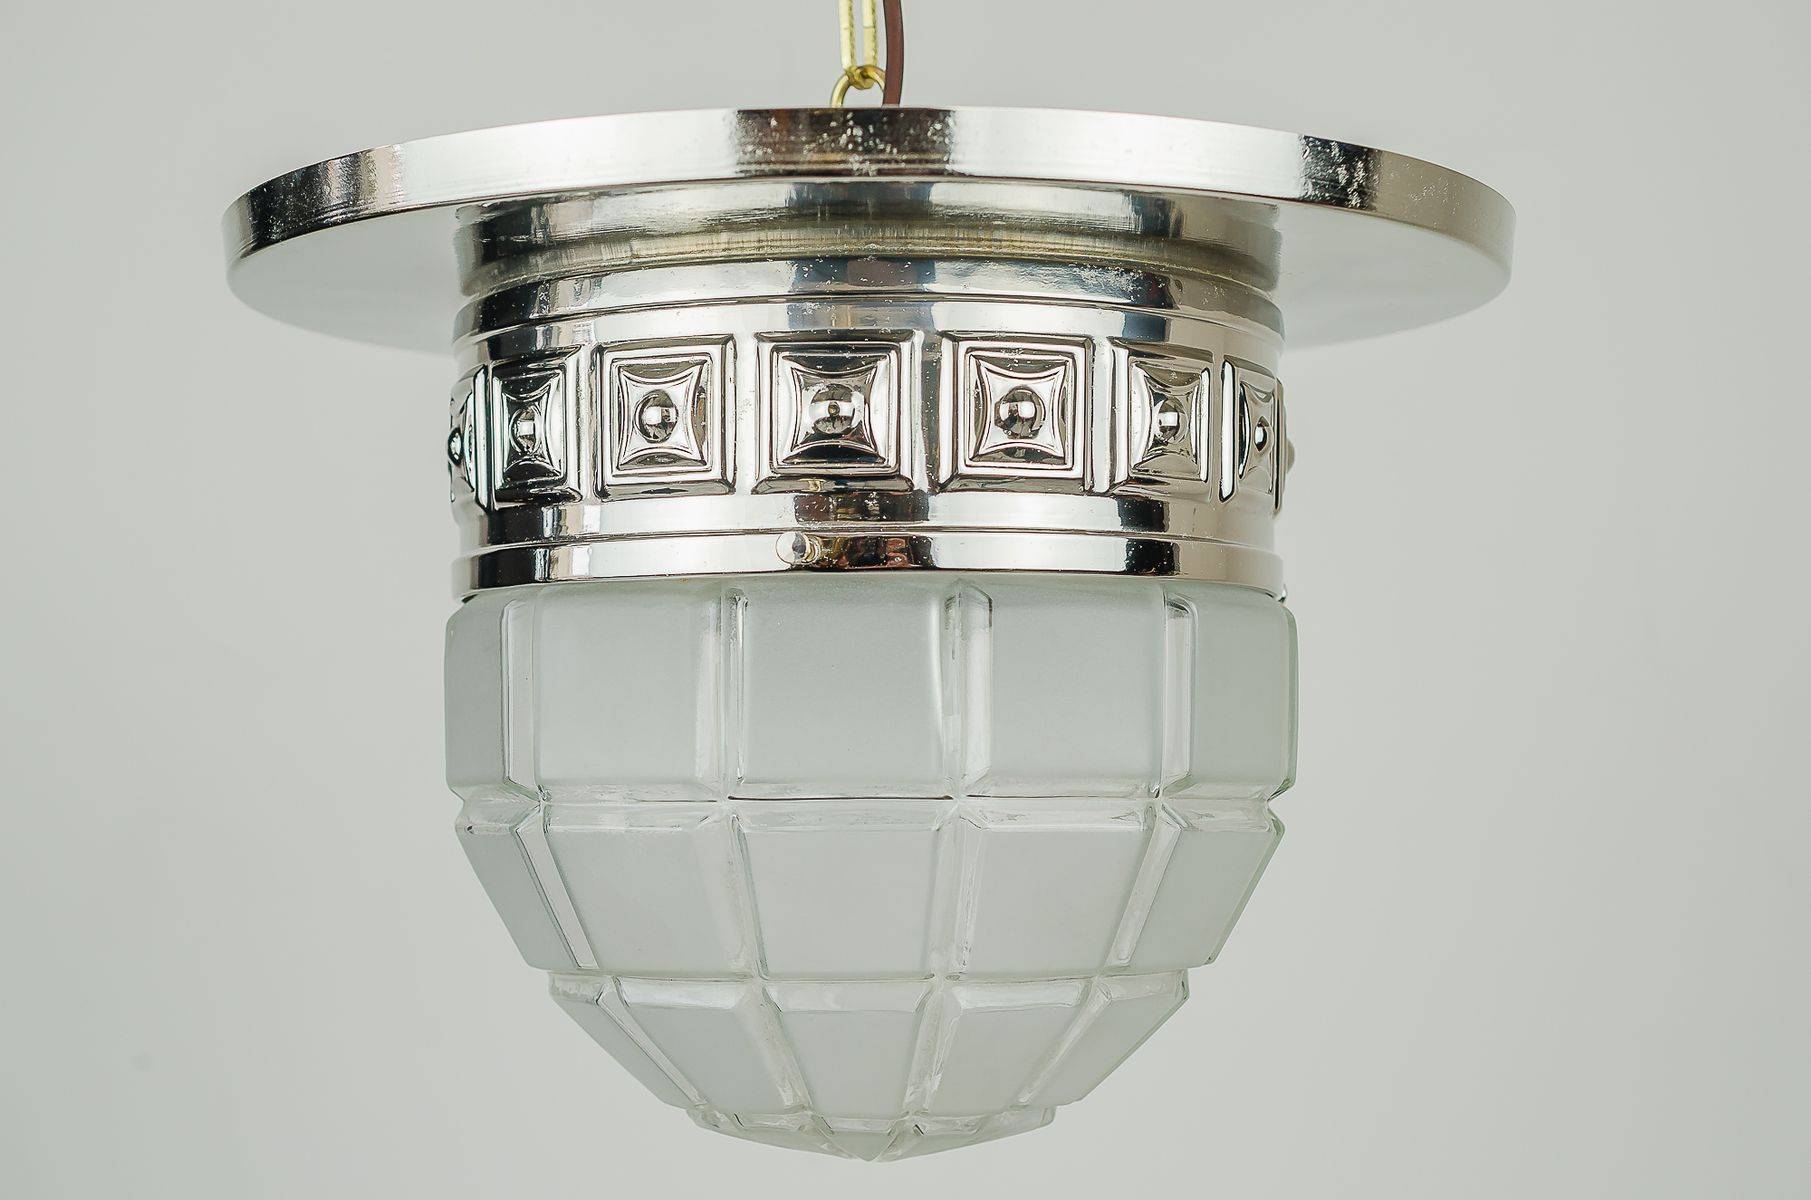 Art deco ceiling lamp 1920s for sale at pamono art deco ceiling lamp 1920s mozeypictures Images